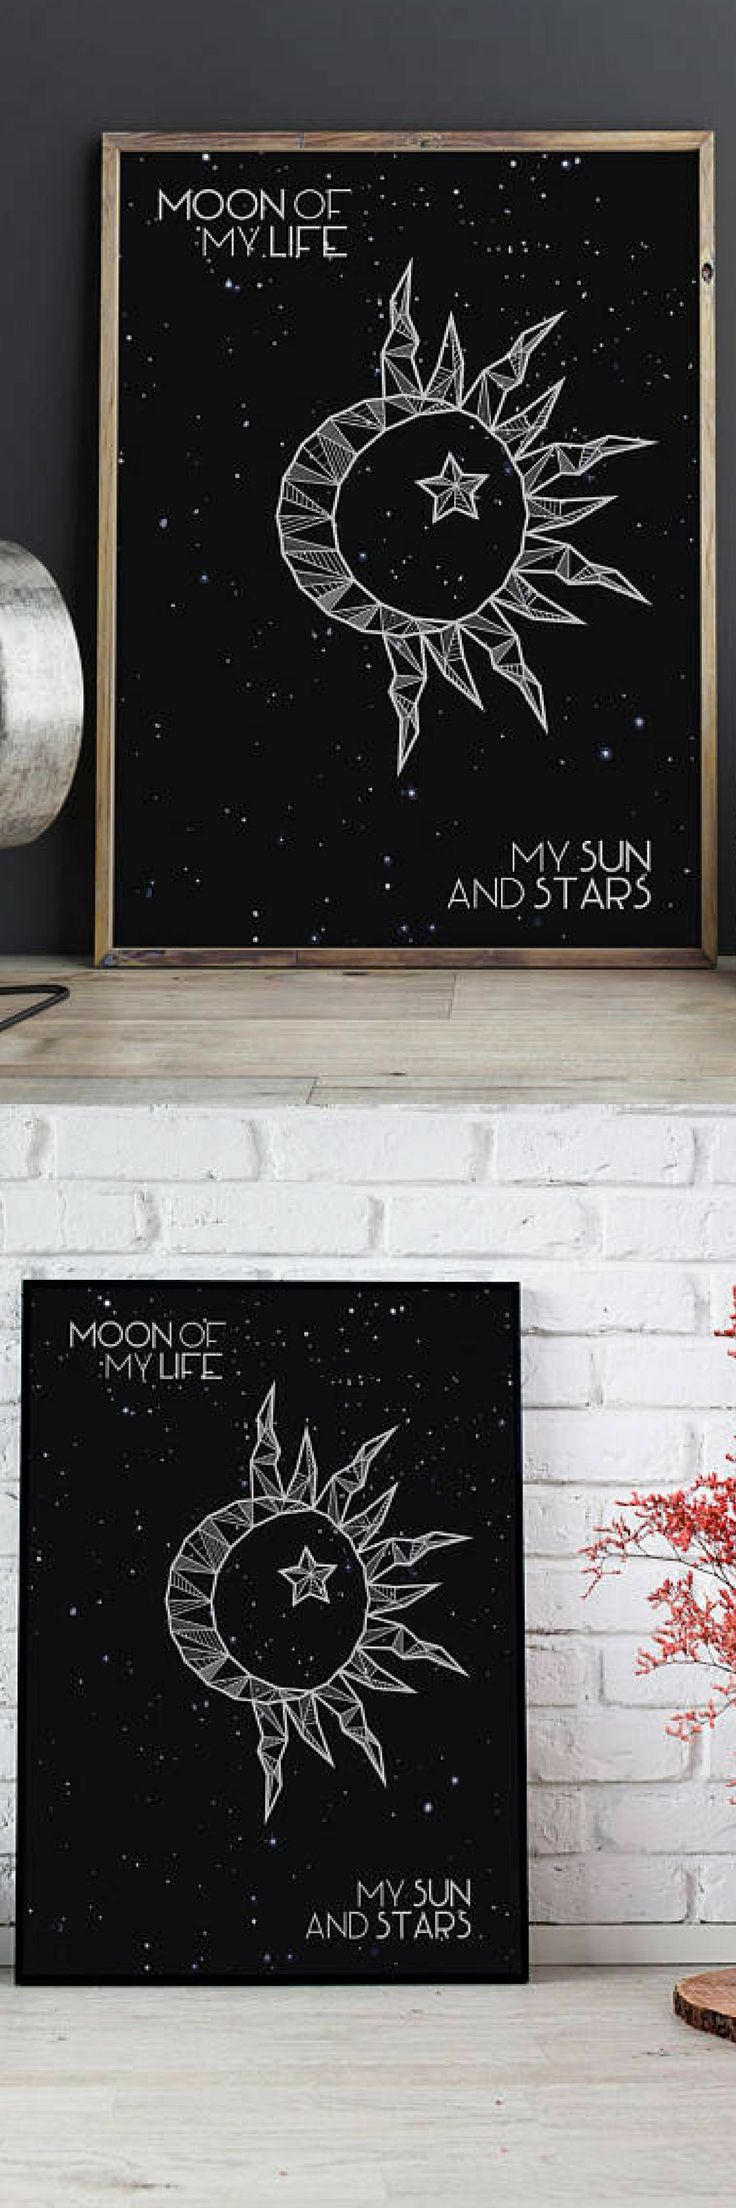 This would be a great gift for a partner and would a beautiful addition to any room! I love game of thrones and I really wish kal drogo and daenerys would have taken the iron throne!   Moon of My Life My Sun and Stars, Game of Thrones Poster, Couple Gift,  Daenerys Targaryen, Khal Drogo, Game of Thrones Wall Art, GoT Decor #giftideas #ad #gameofthrones #valentinesideas #homedecorideas #livingroomdecor #bedroomdecor